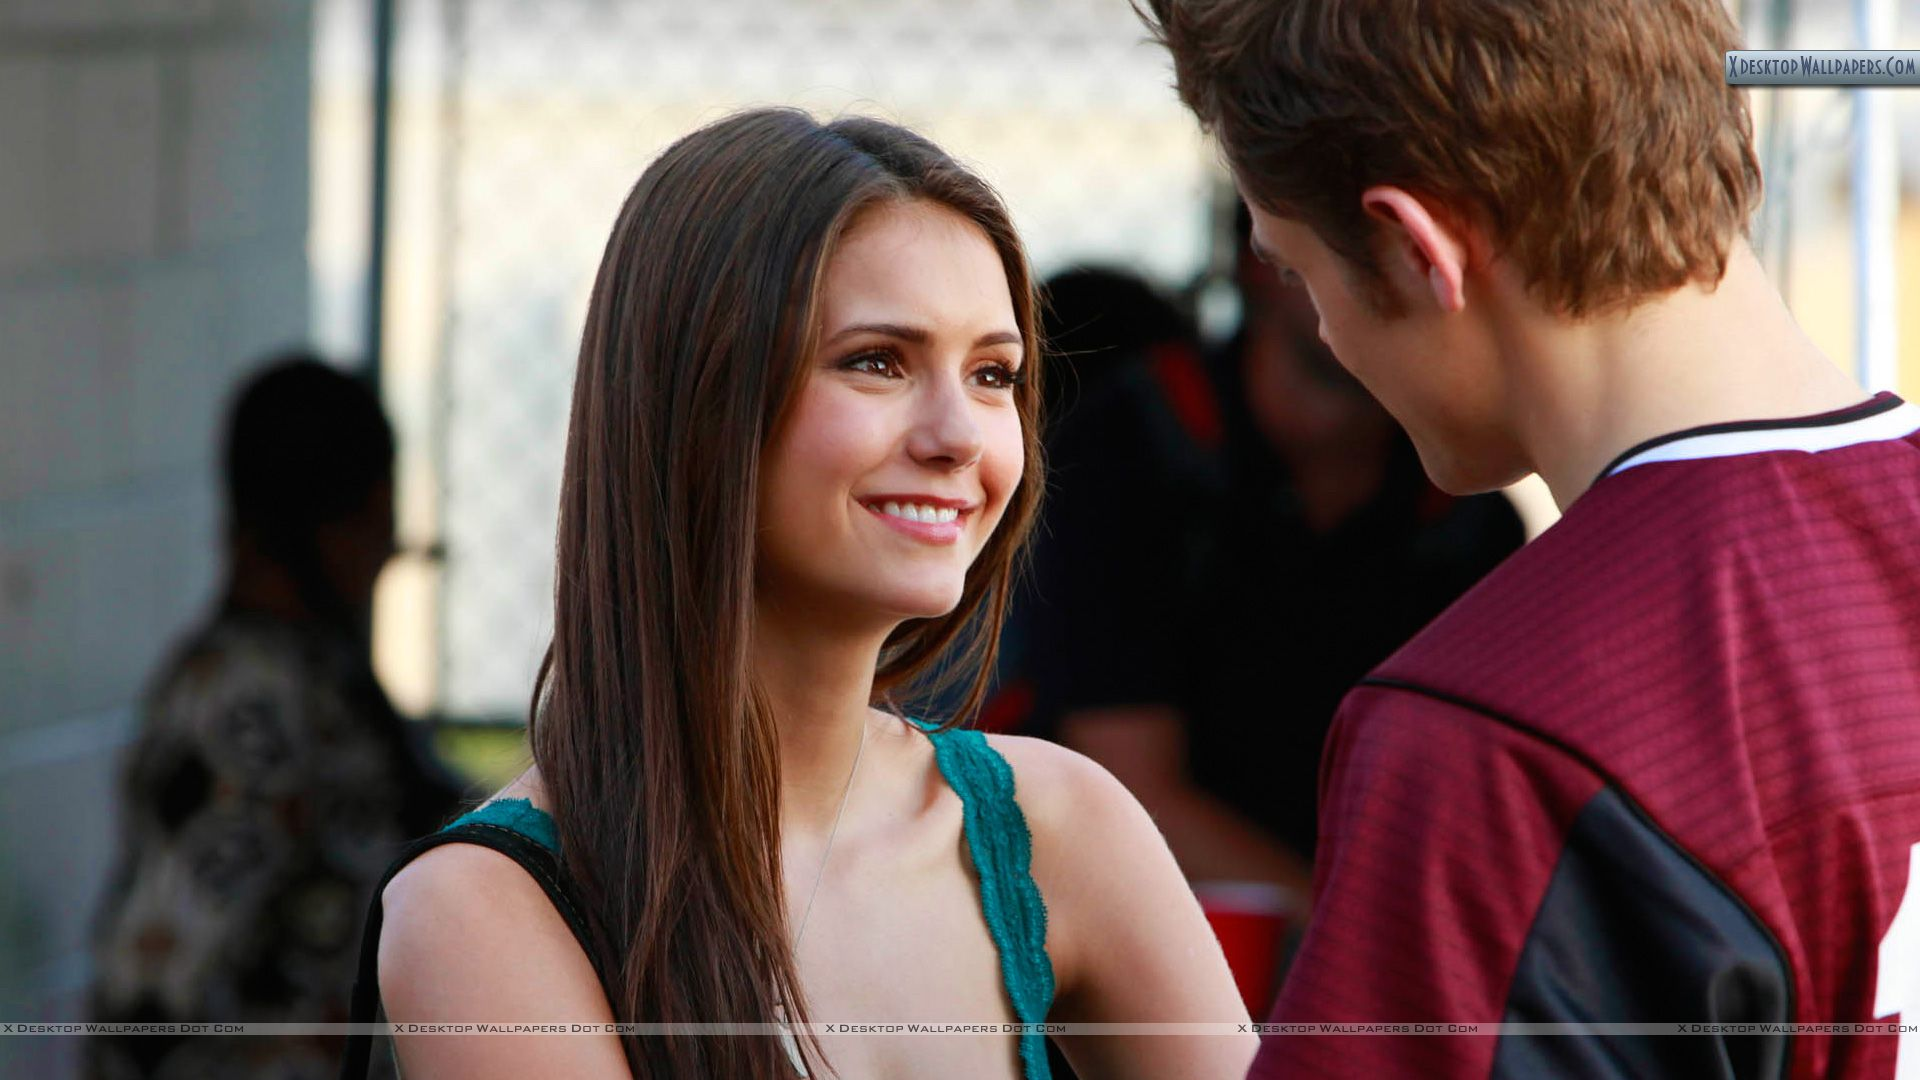 """elena vampire diaries dating No one does love – or lust – quite like """"the vampire diaries,"""" whether after spending so much time chasing after elena, it was nice to see stefan jeremy were still dating, which doesn't exactly sound like an epic romance."""